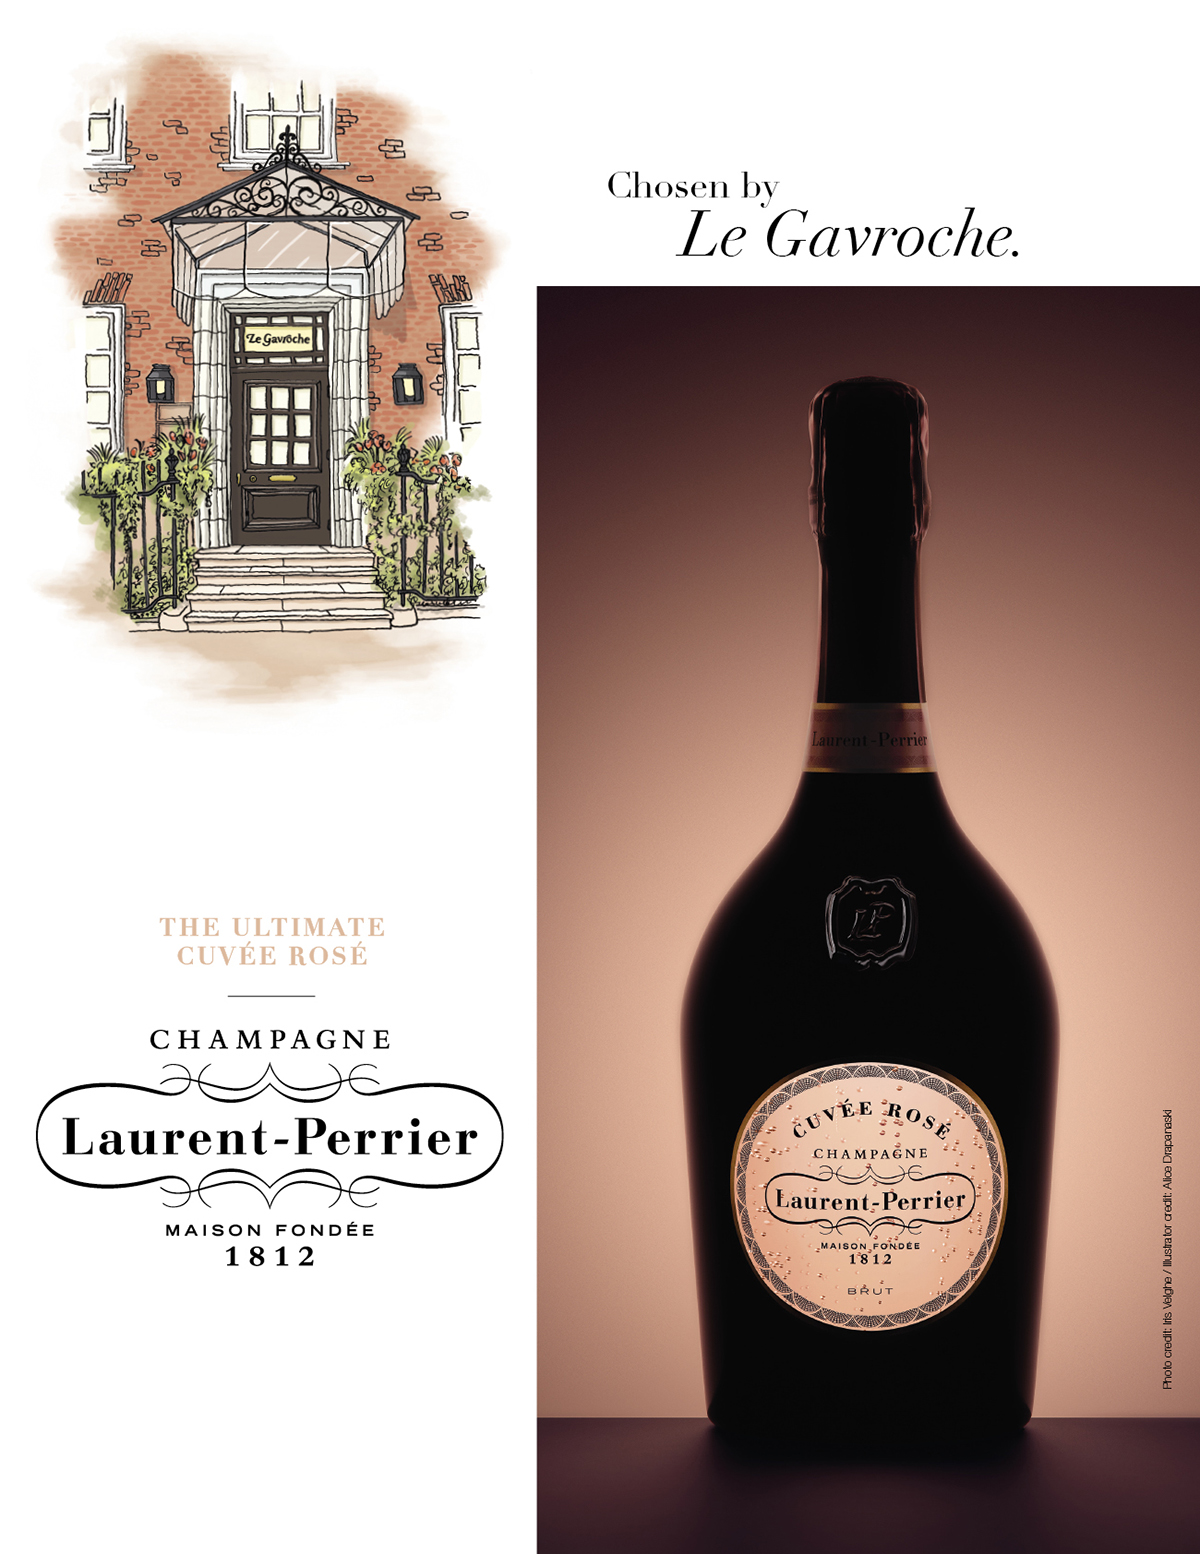 laurent-perrier-champagne-publicite-marketing-ads-cuvee-rose-tour-argent-meurice-gstaad-palace-ritz-dorchester-gavroche-agence-publicis-conseil-8